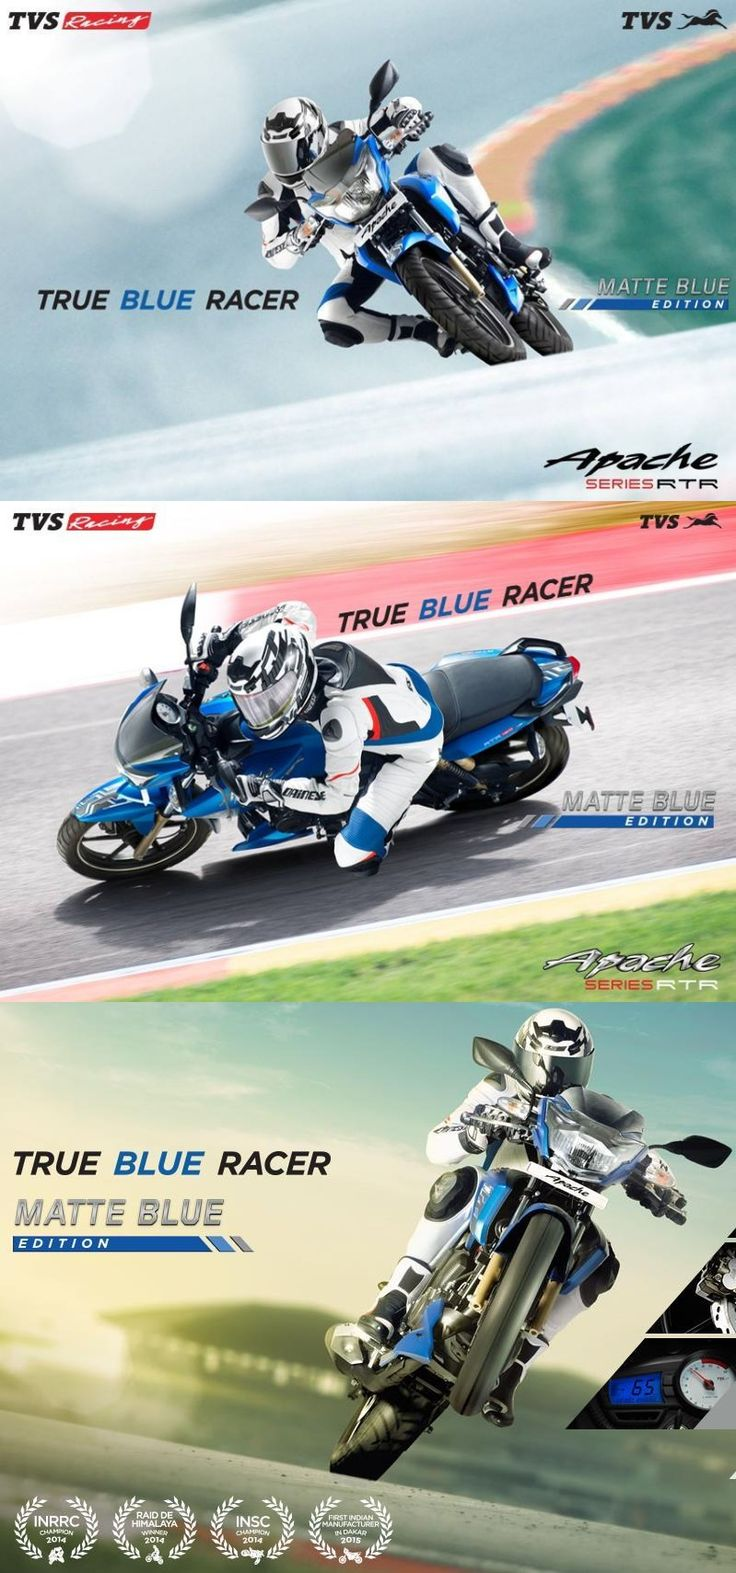 The true blue #racer is here !!! TVS Motor Company introduce Matte Blue Edition For TVS Apache series. t